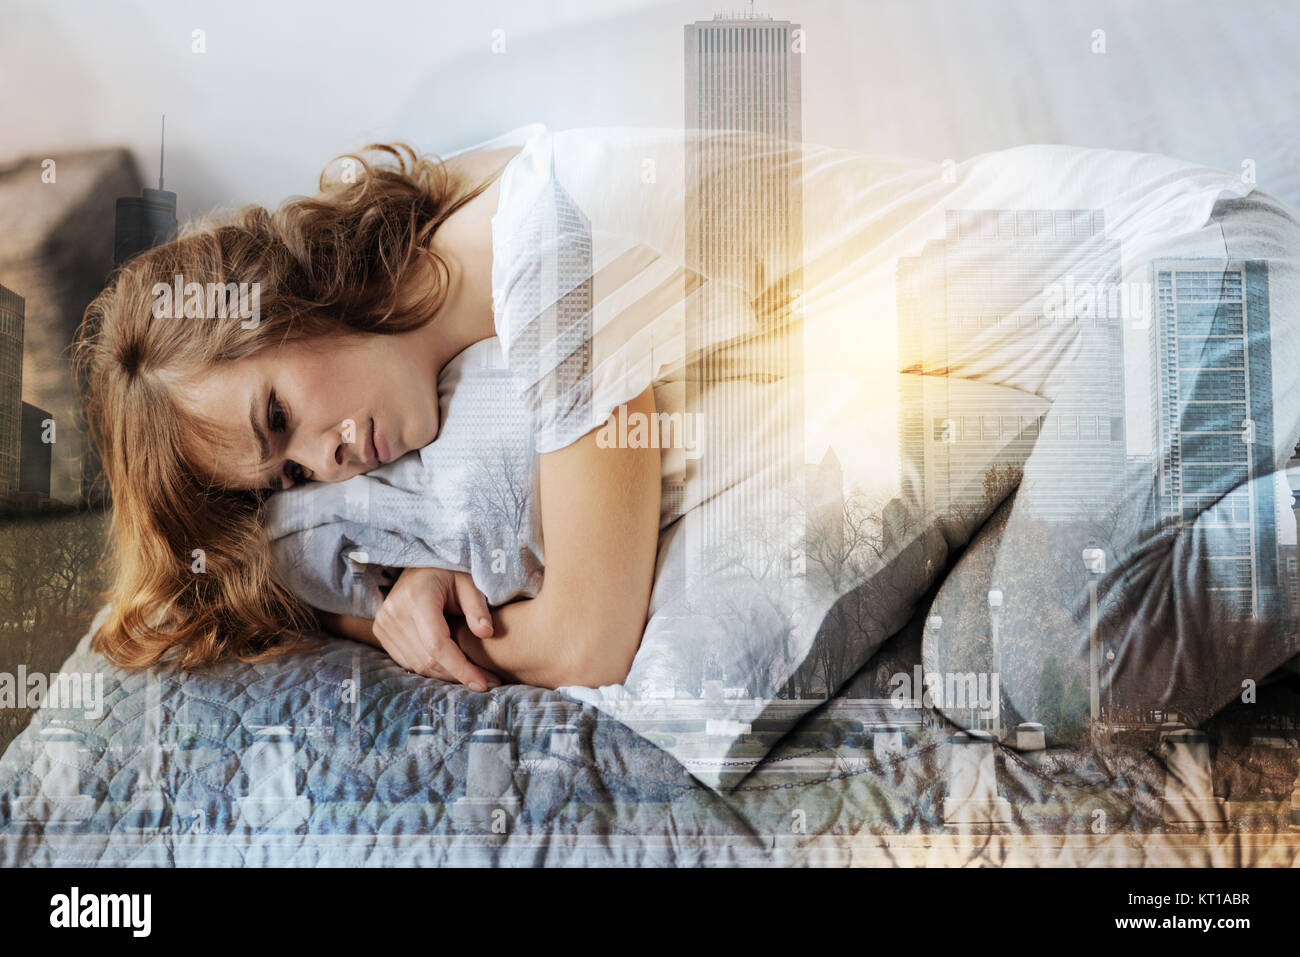 Sick female person lying on her bed - Stock Image